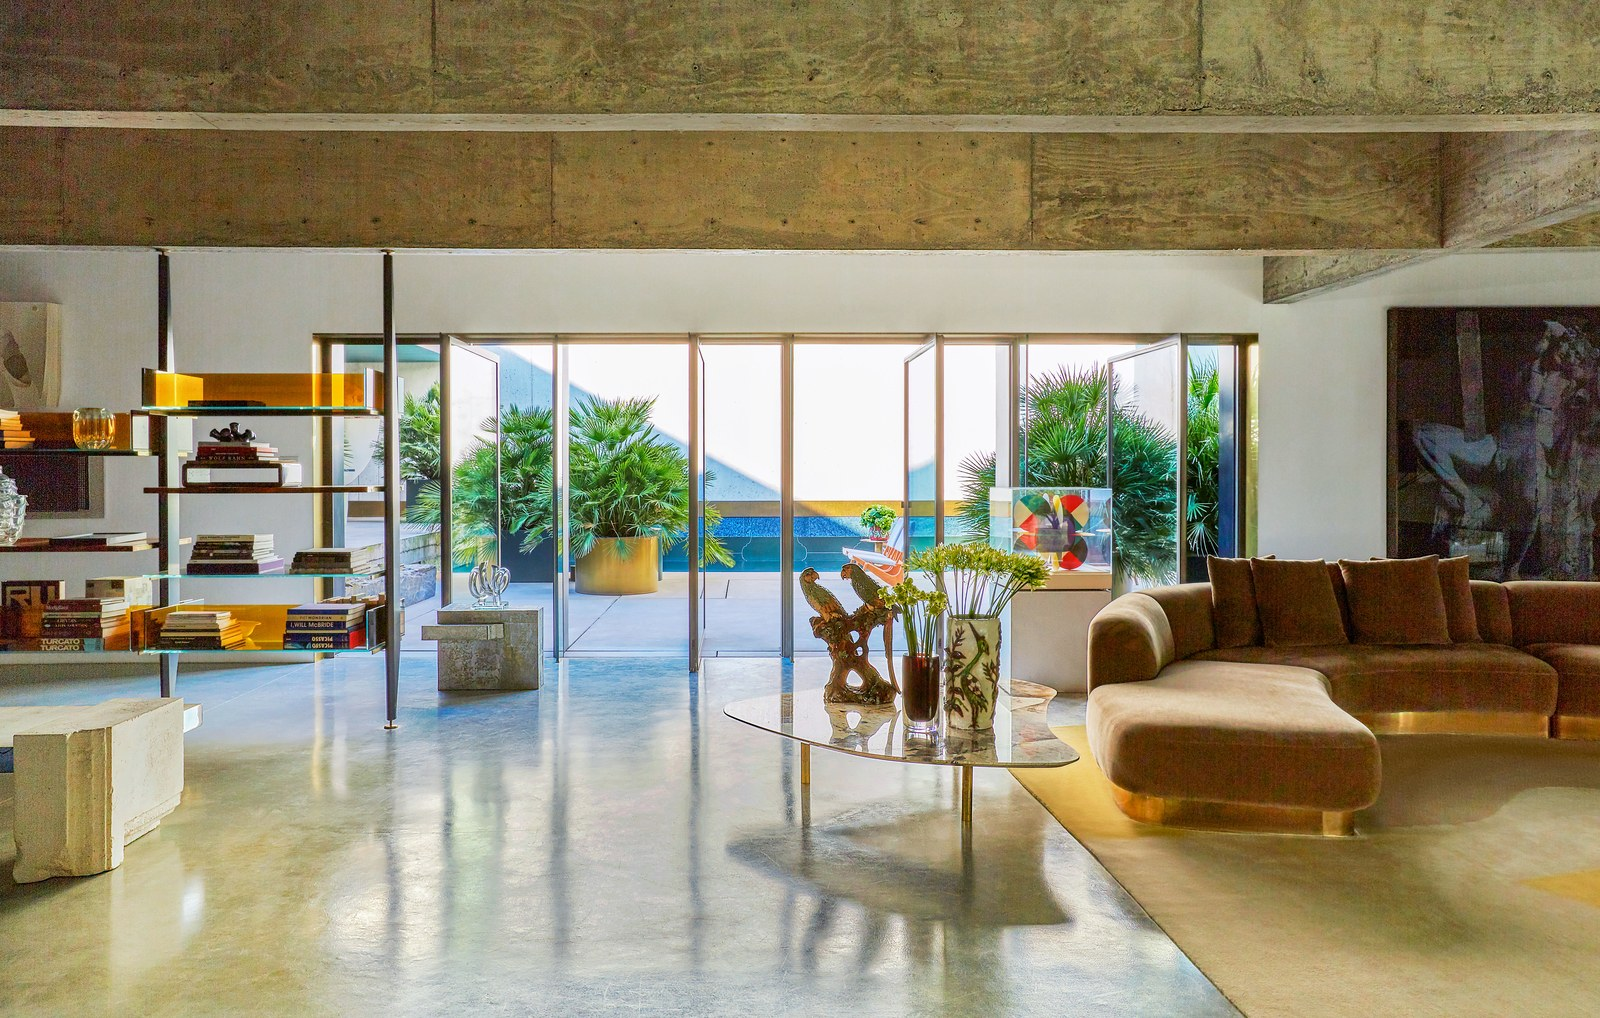 10 Italian Interior Designers You Need To Know italian interior designer 10 Italian Interior Designers You Need To Know 14